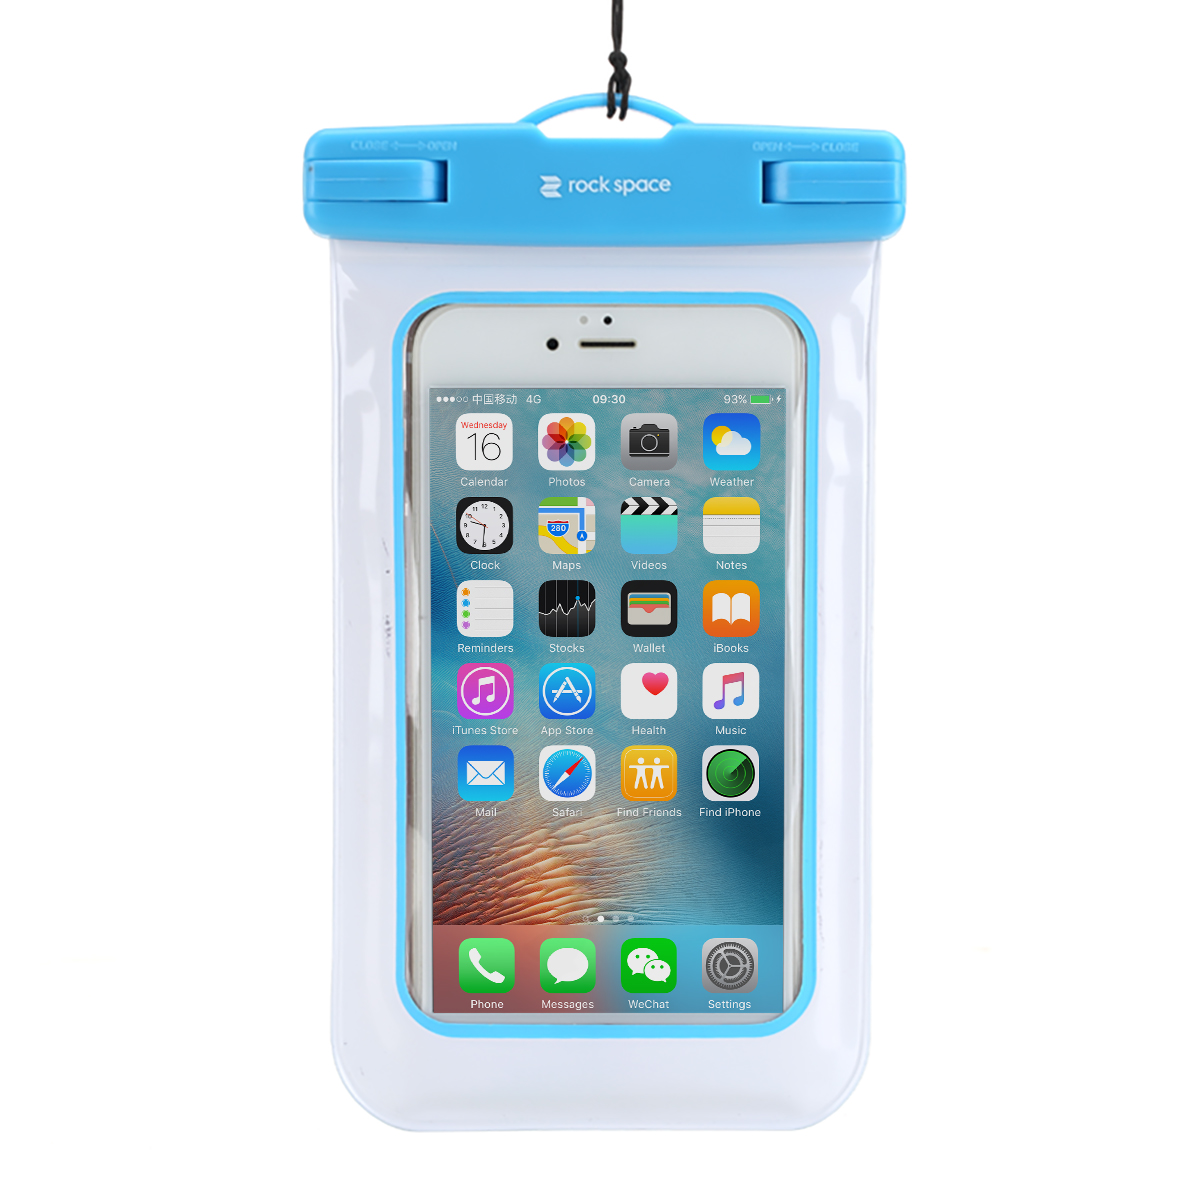 "Universal Waterproof Case Pouch, IPX8 Certified to 100 Feet Cellphone Dry Bag for most smartphones up to 6.0"" - Light Blue"